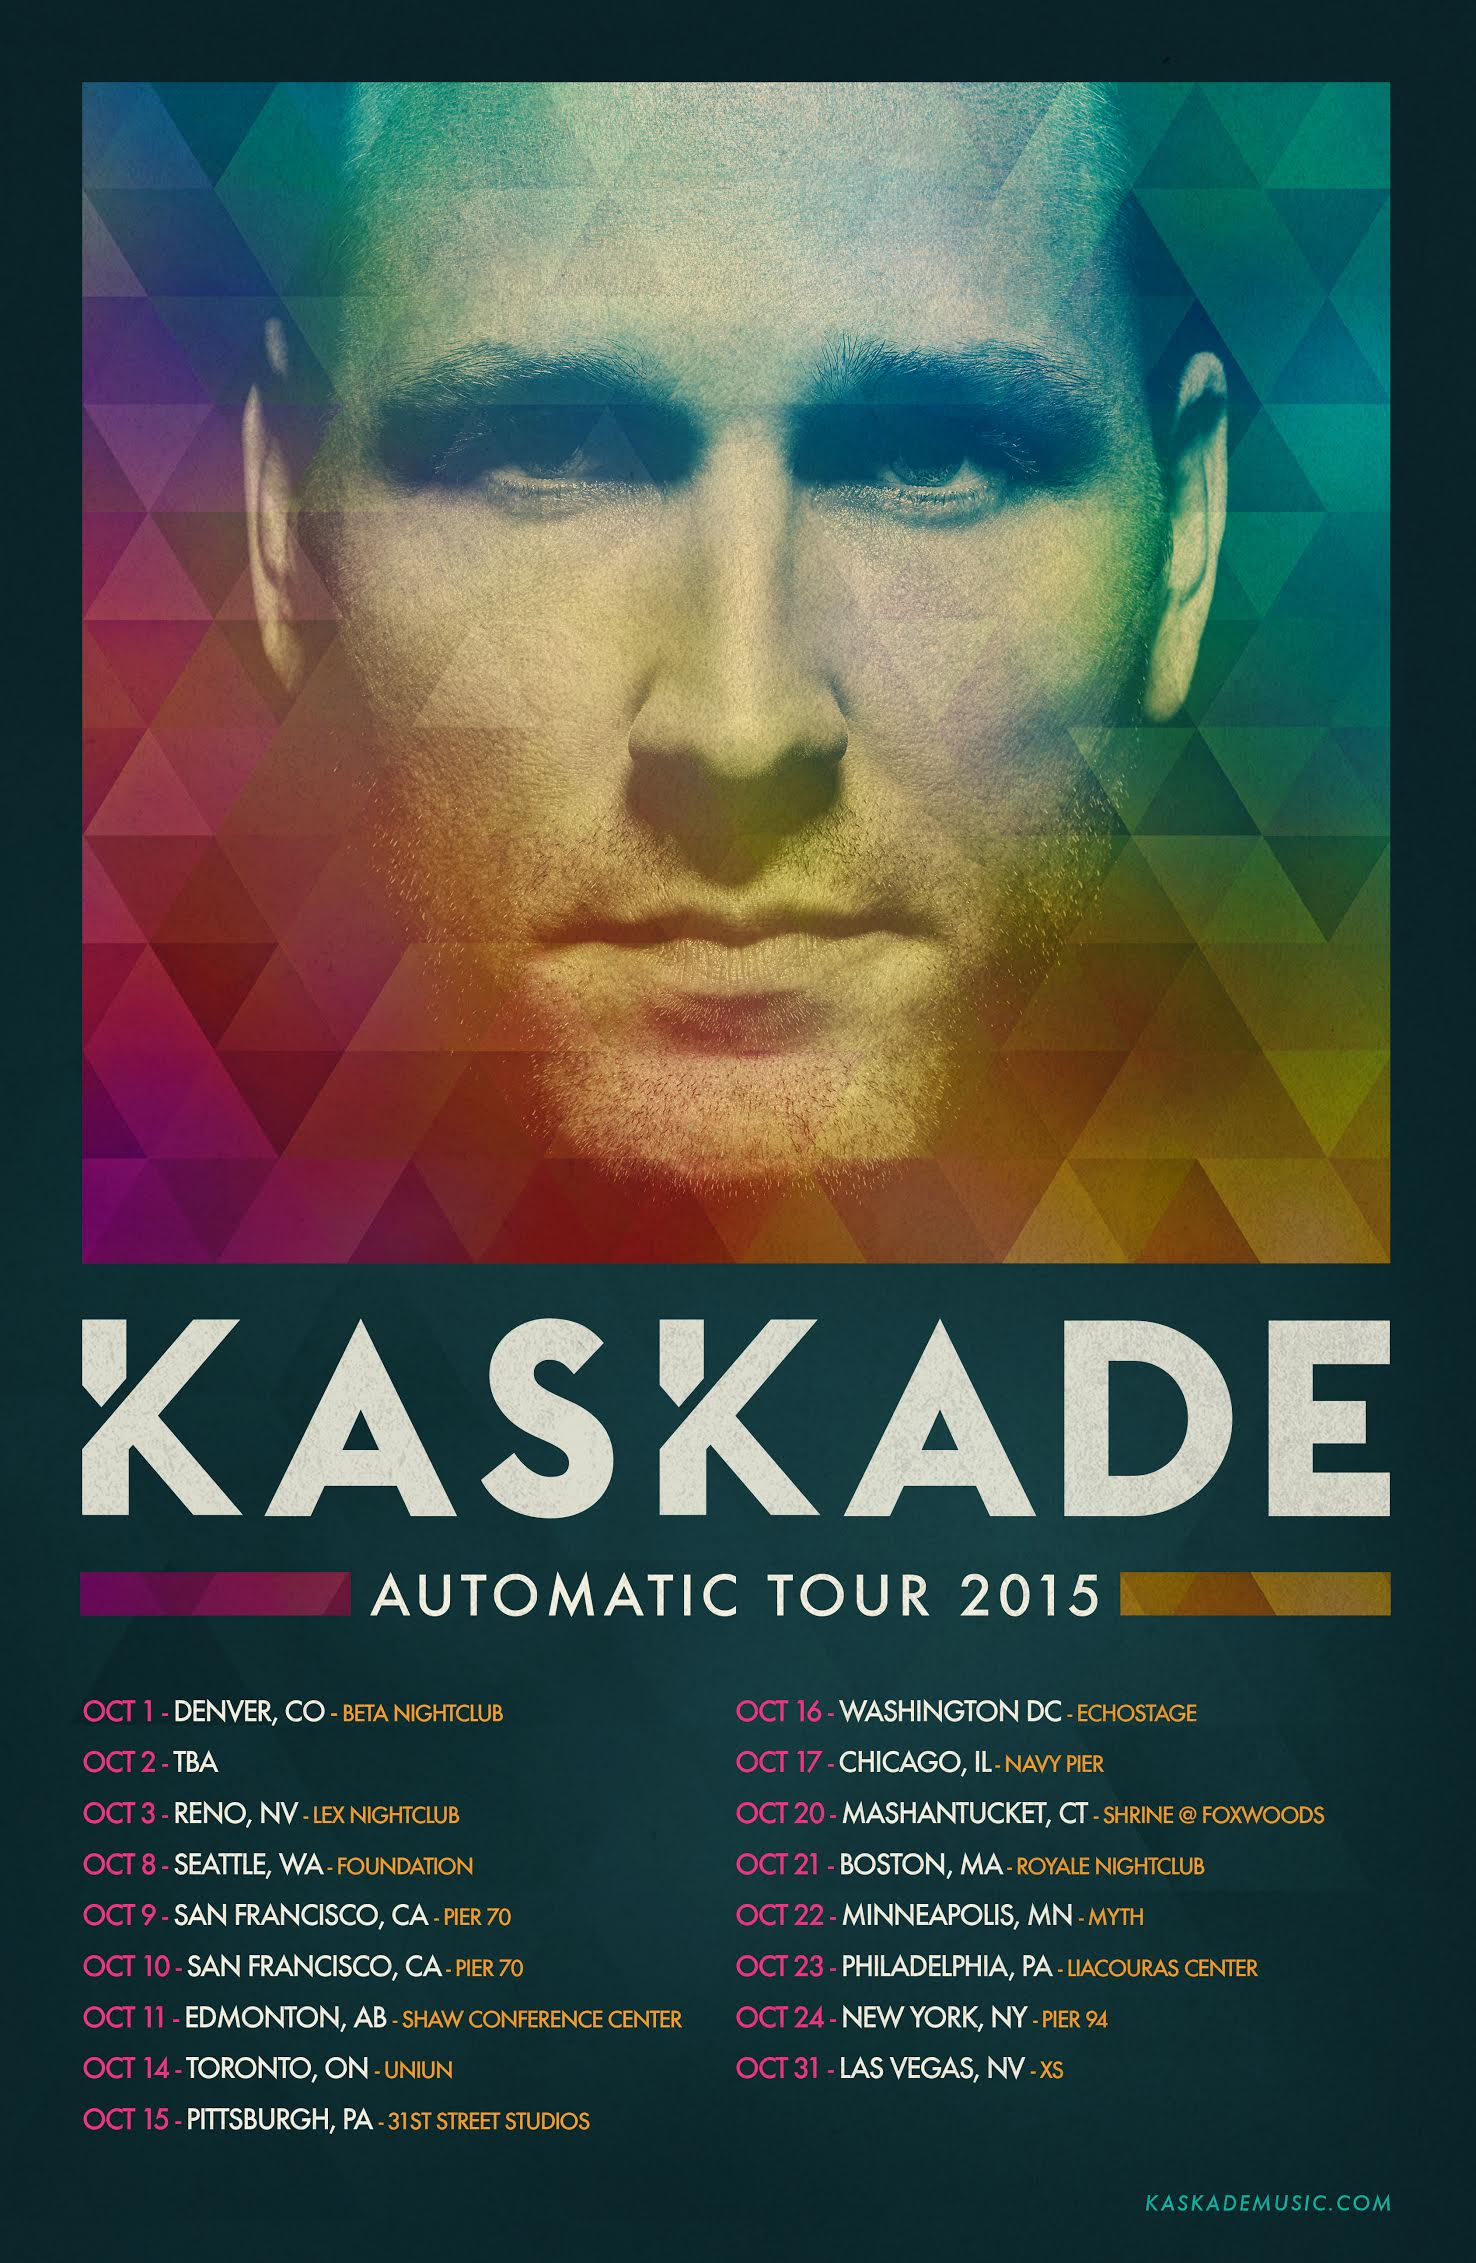 Kaskade - Automatic Tour